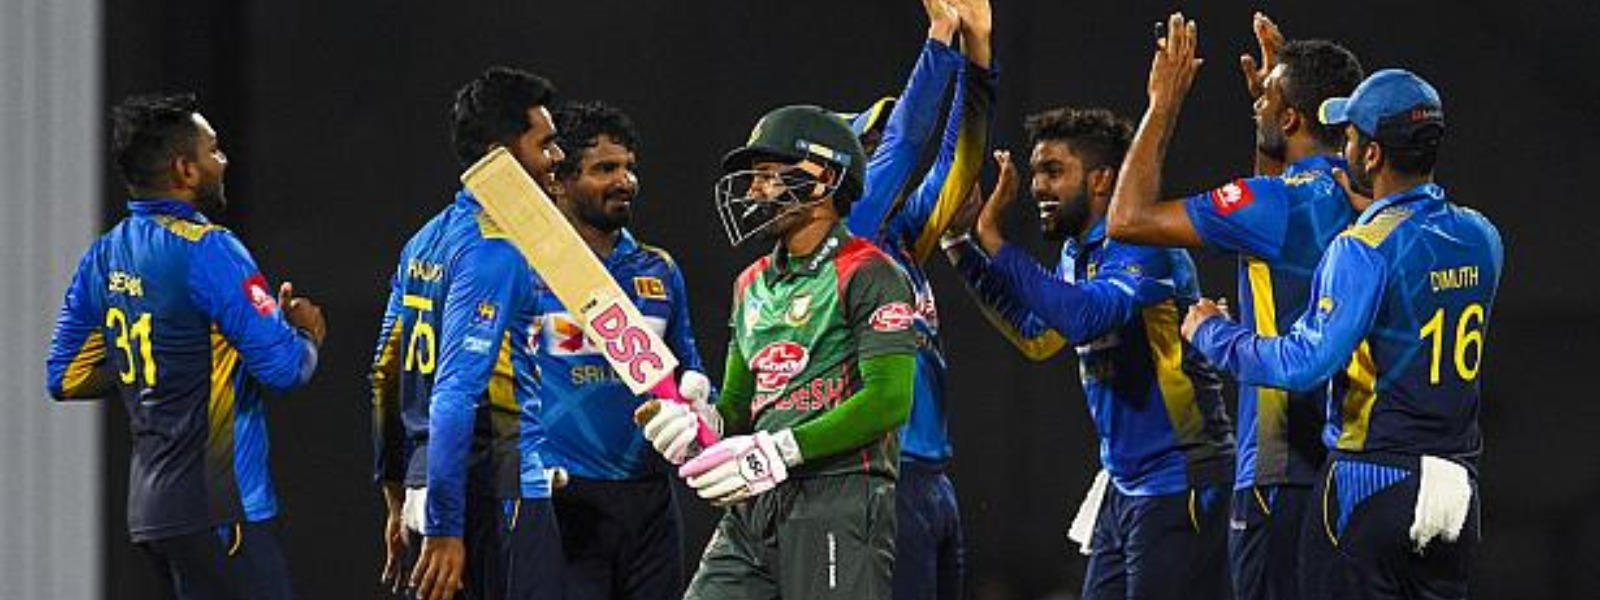 Sri Lanka whitewash Bangladesh in the 3-match ODI series